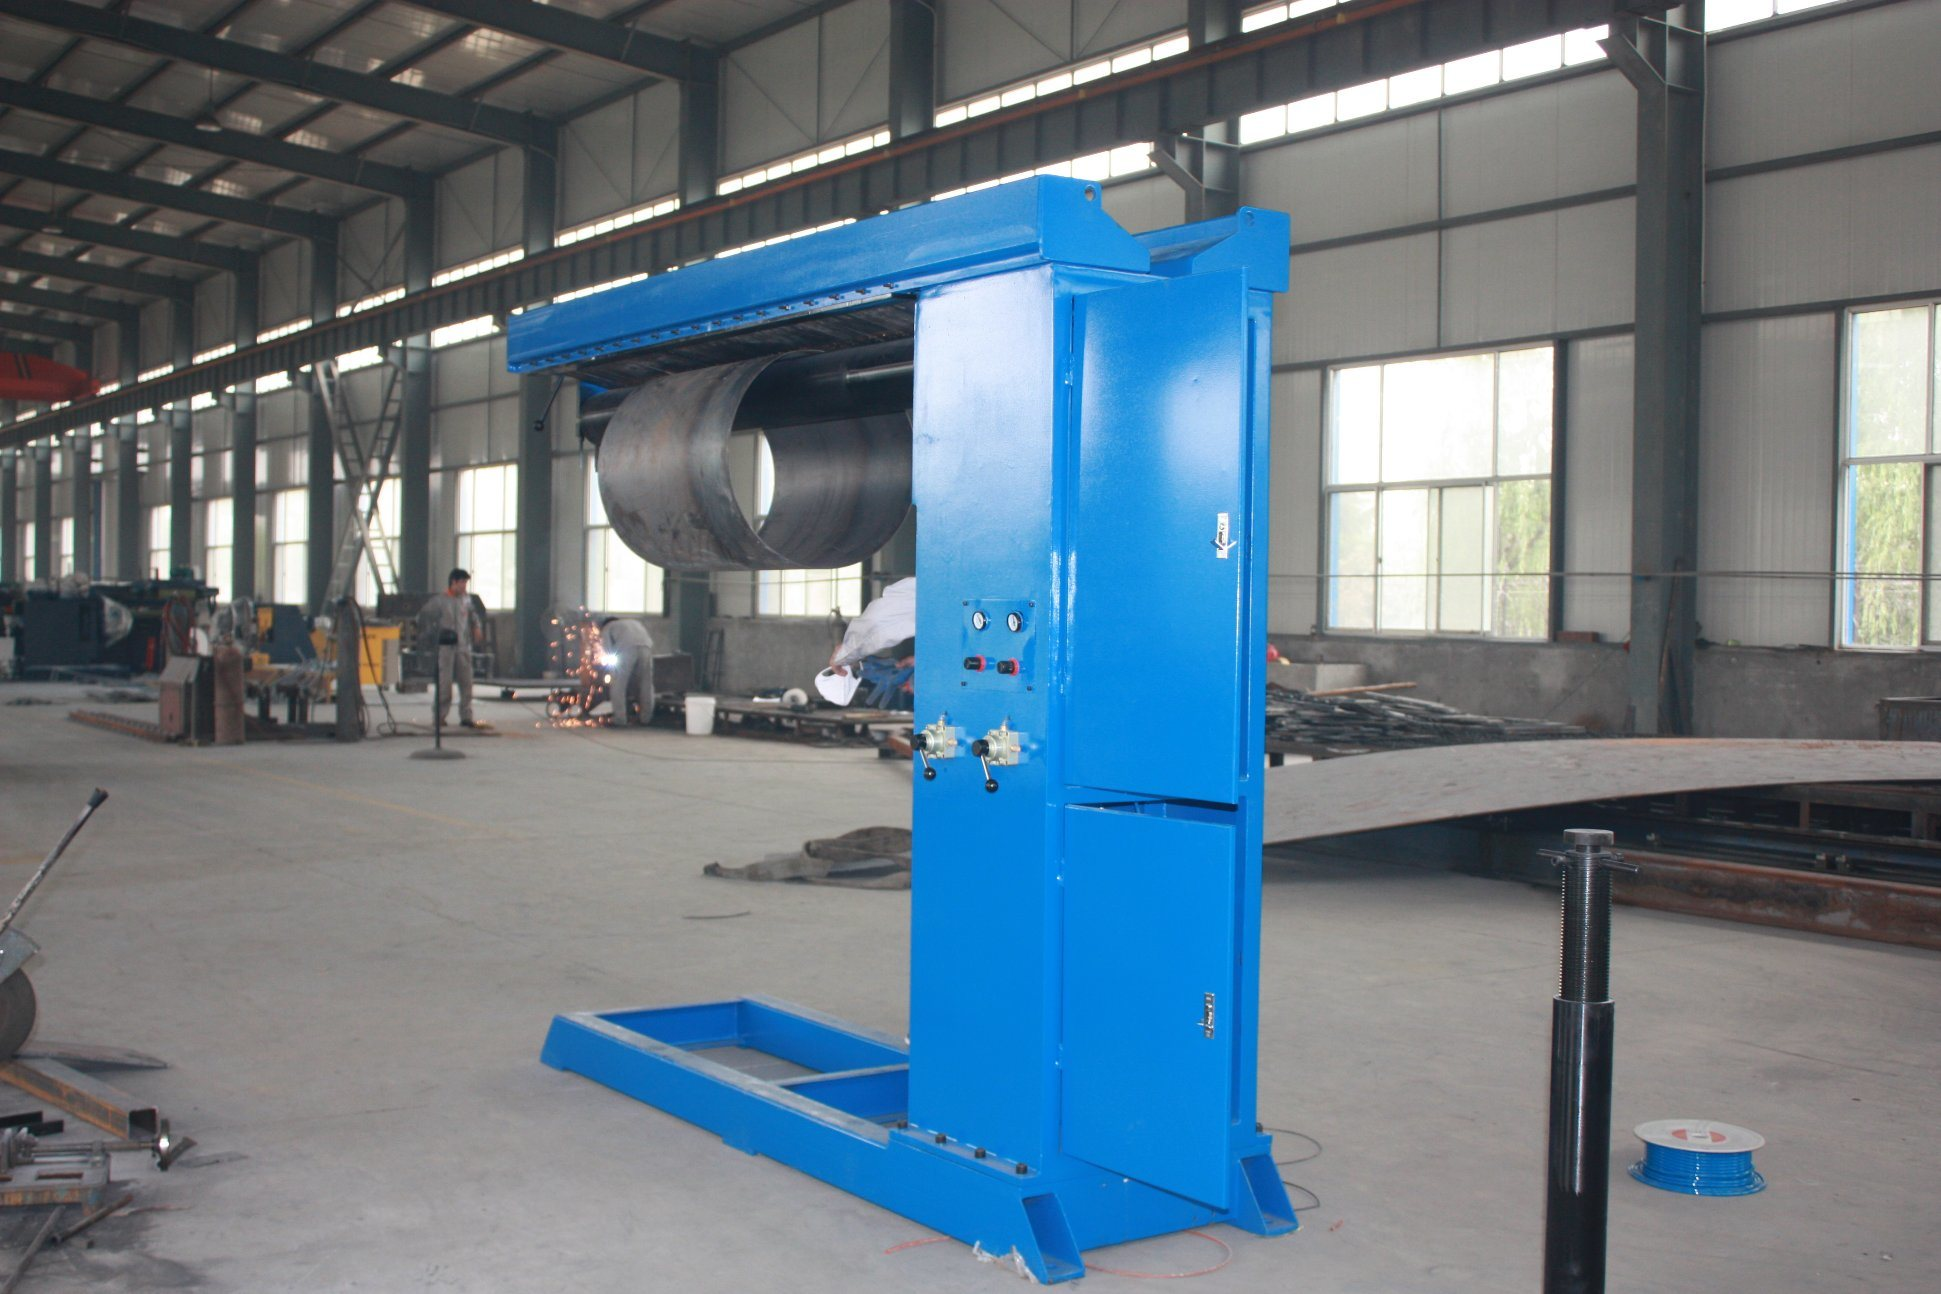 Lingitudinal Seam Welding Equipment for Pipe